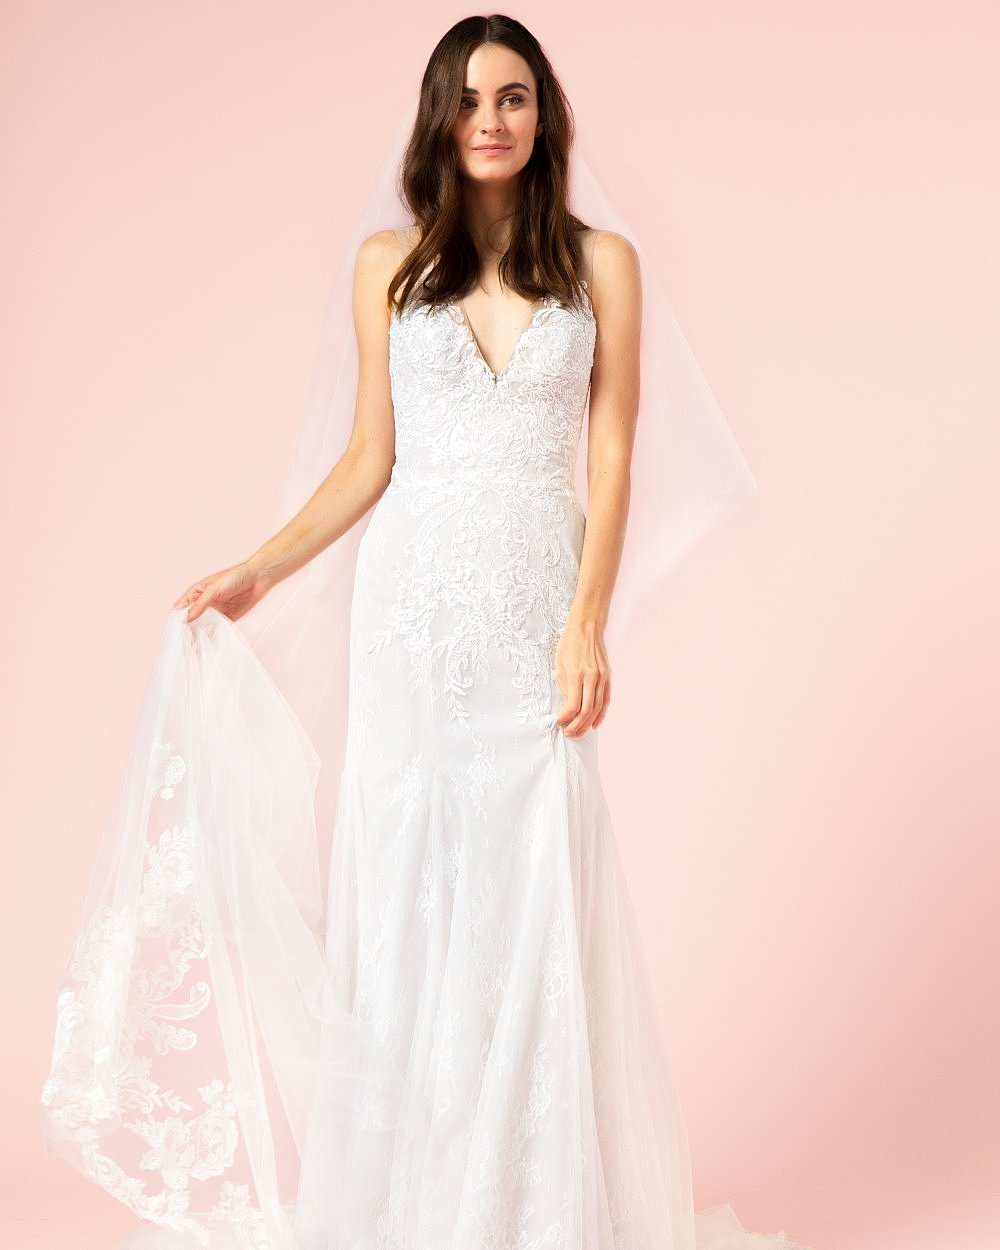 Town and Country Bridal - Bridal Shop - St. Louis - Wedding Dress